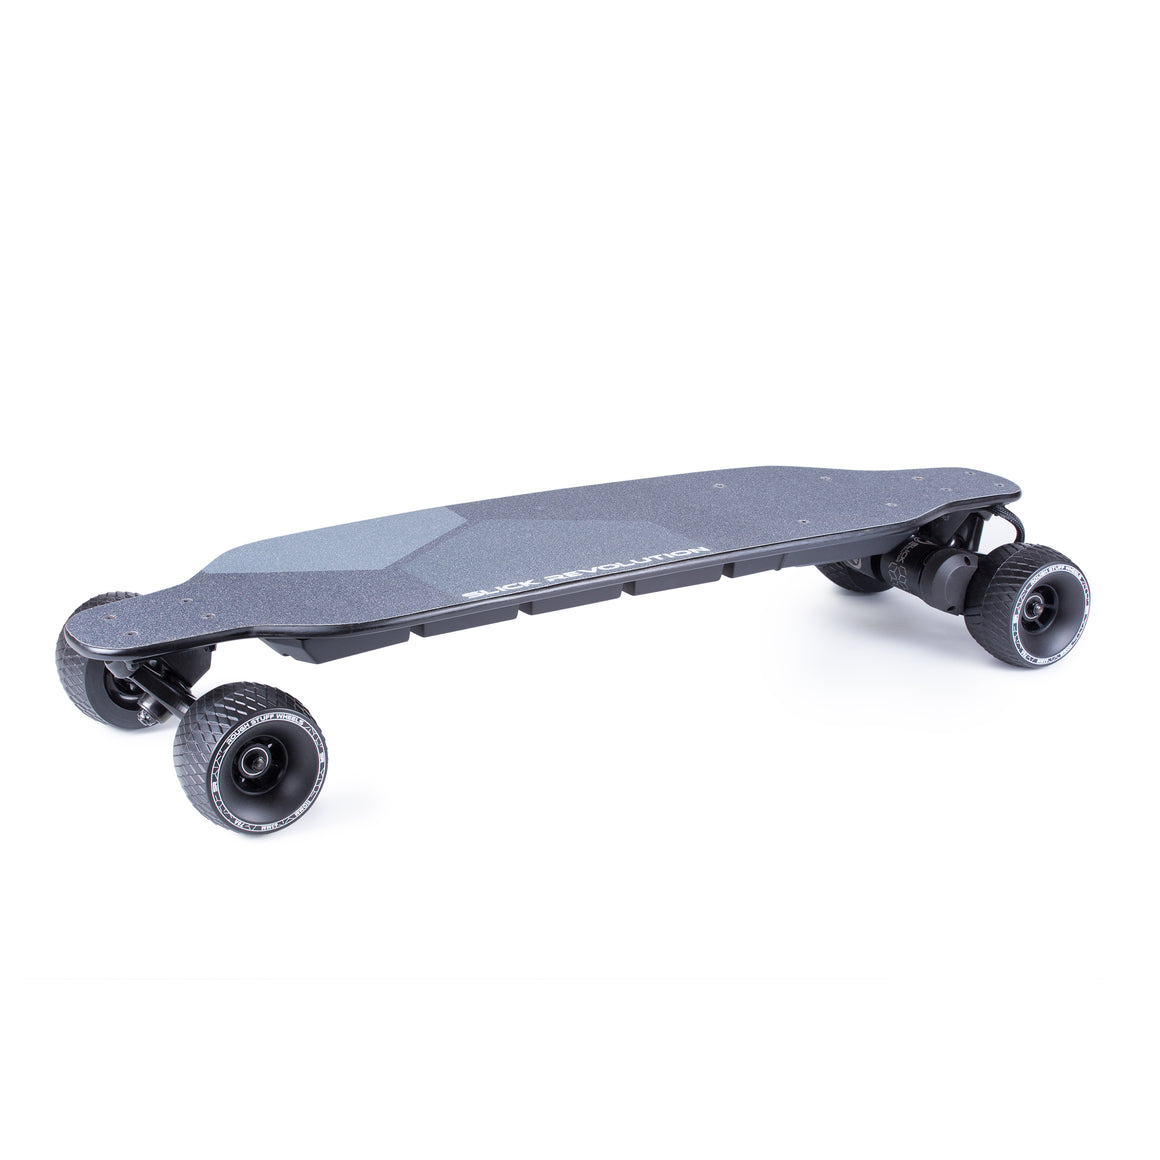 Flex-E 2.0 Electric Skateboard by Slick Revolution